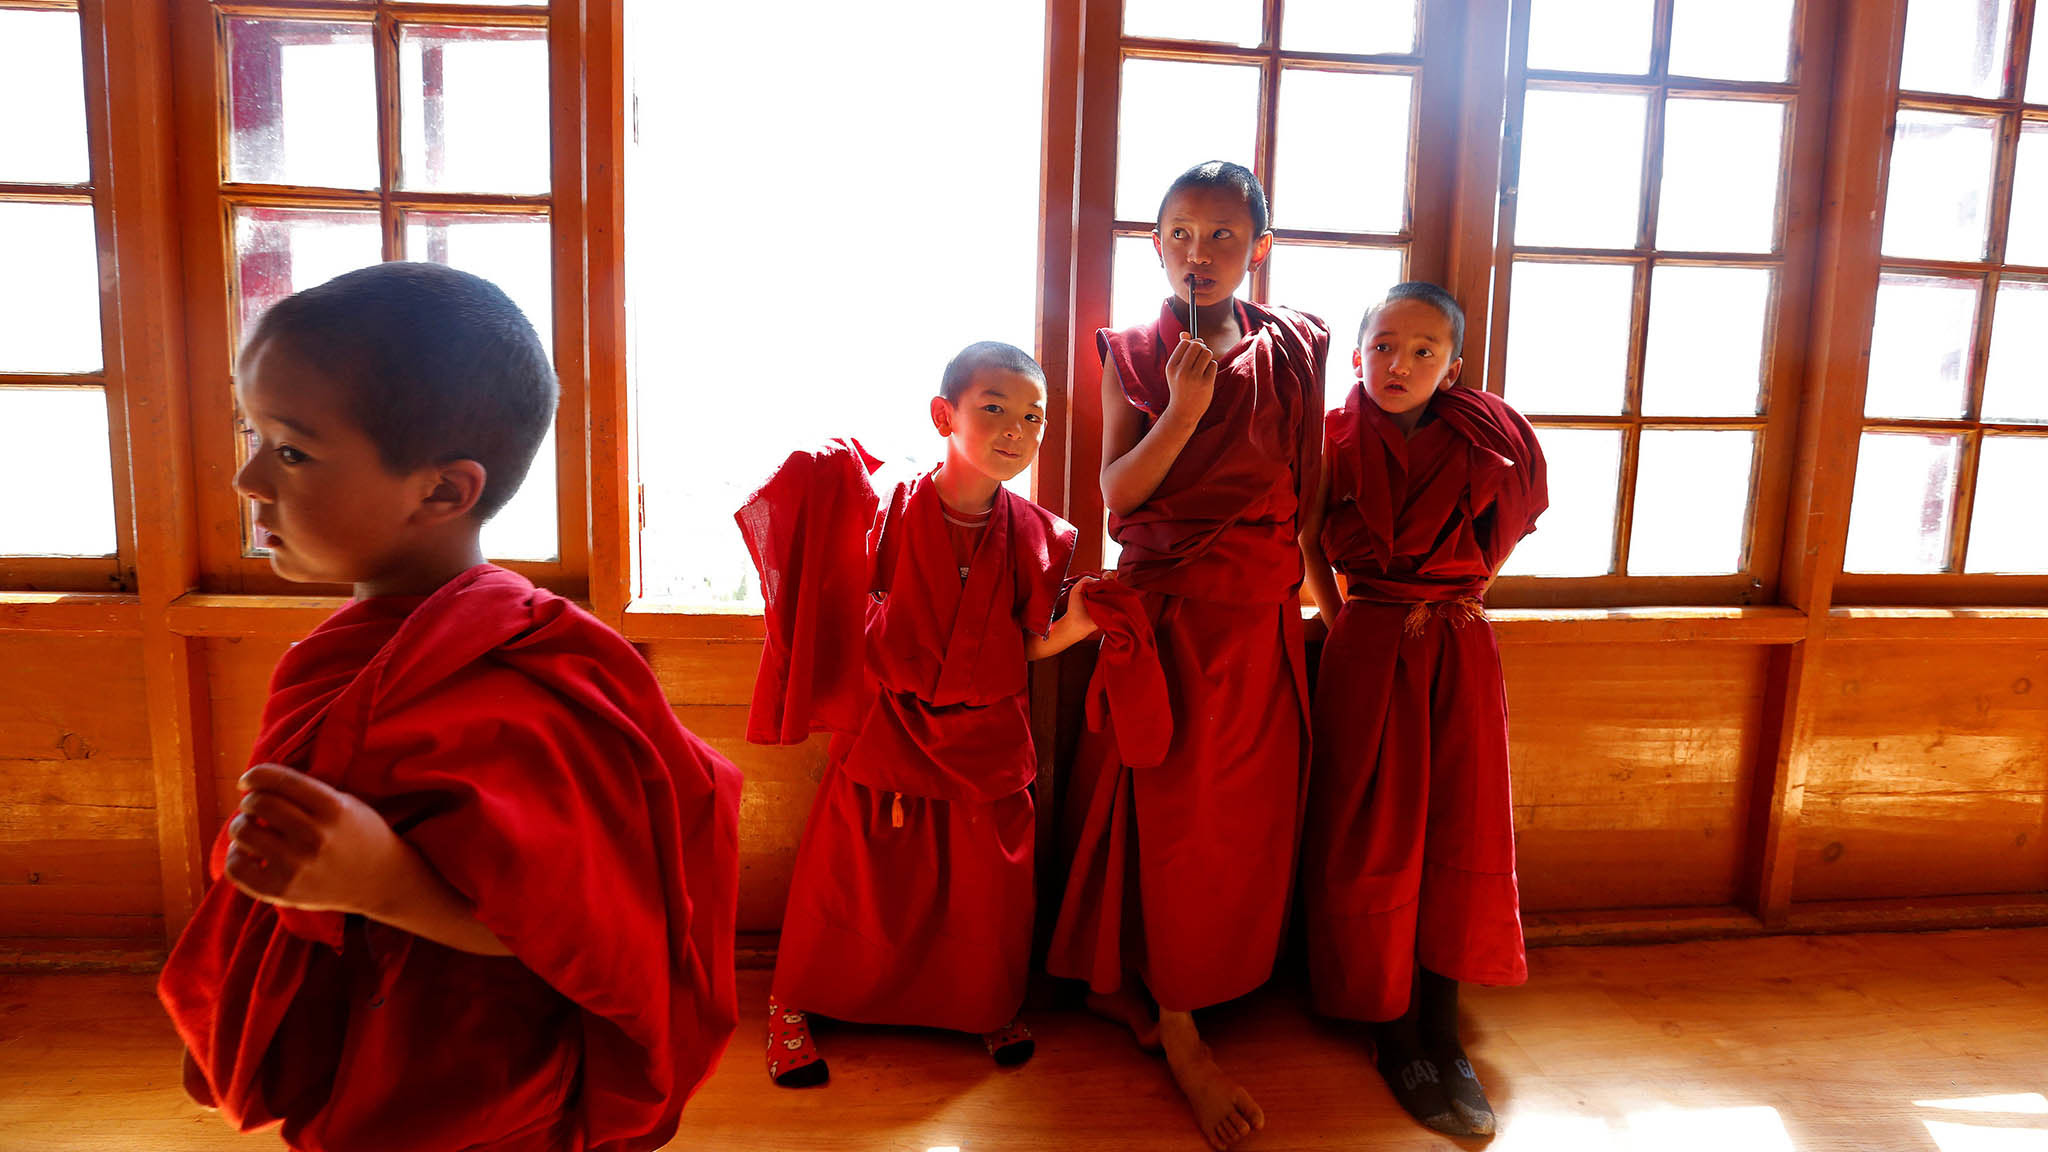 Child monks in the Indian Himalayas